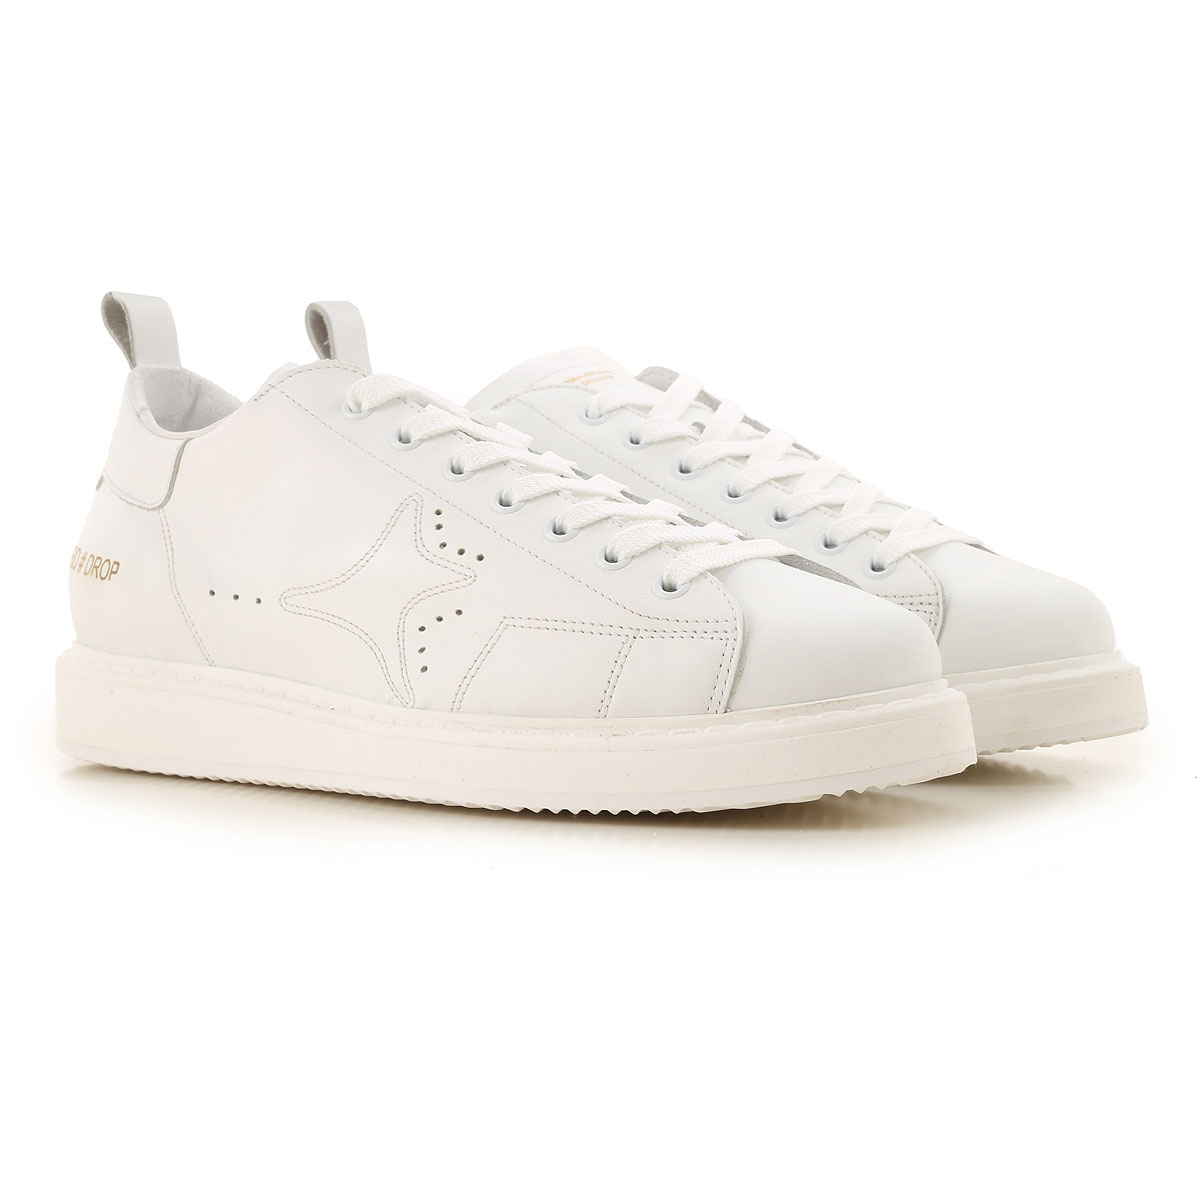 Ama Brand Sneakers for Men On Sale, White, Leather, 2019, EUR 40 - UK 6 - USA 7 EUR 43 - UK 9 - USA 9.5 EUR 44 - UK 9.5 - USA 10 EUR 45 - UK 10.5 - US